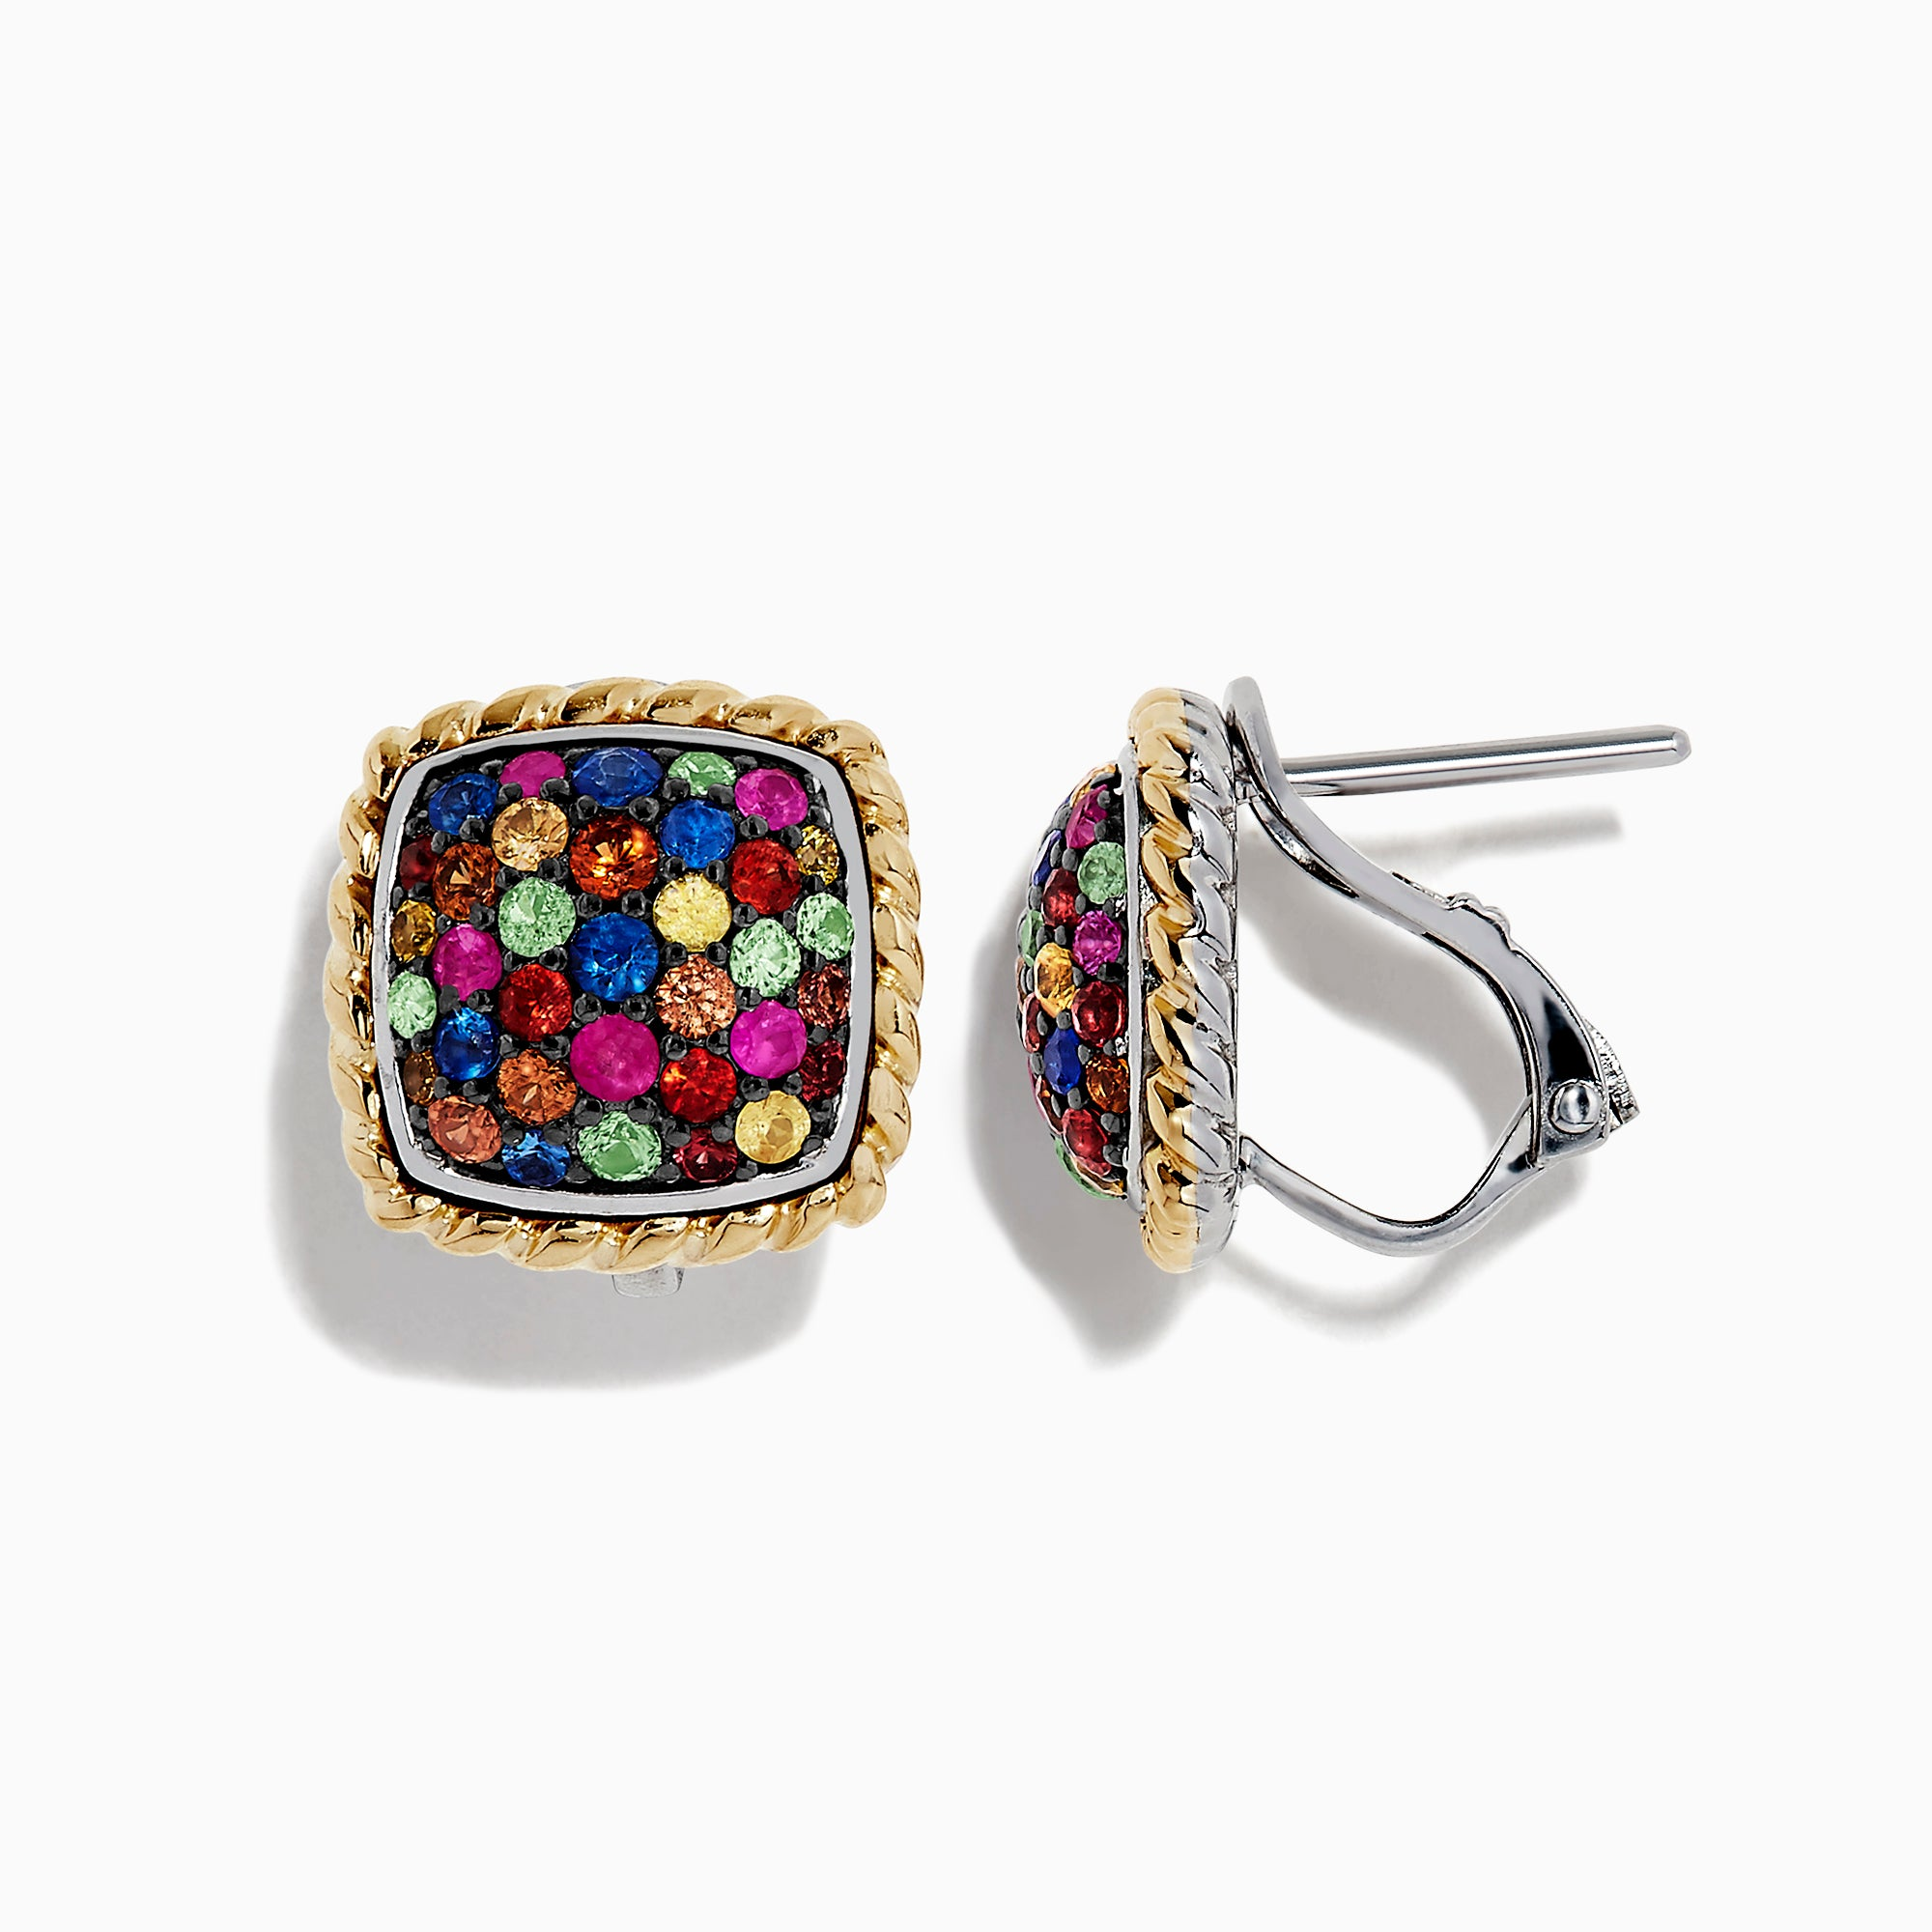 Effy Mosaic Sterling Silver & 18K Gold Multi Sapphire Earrings, 1.16 TCW